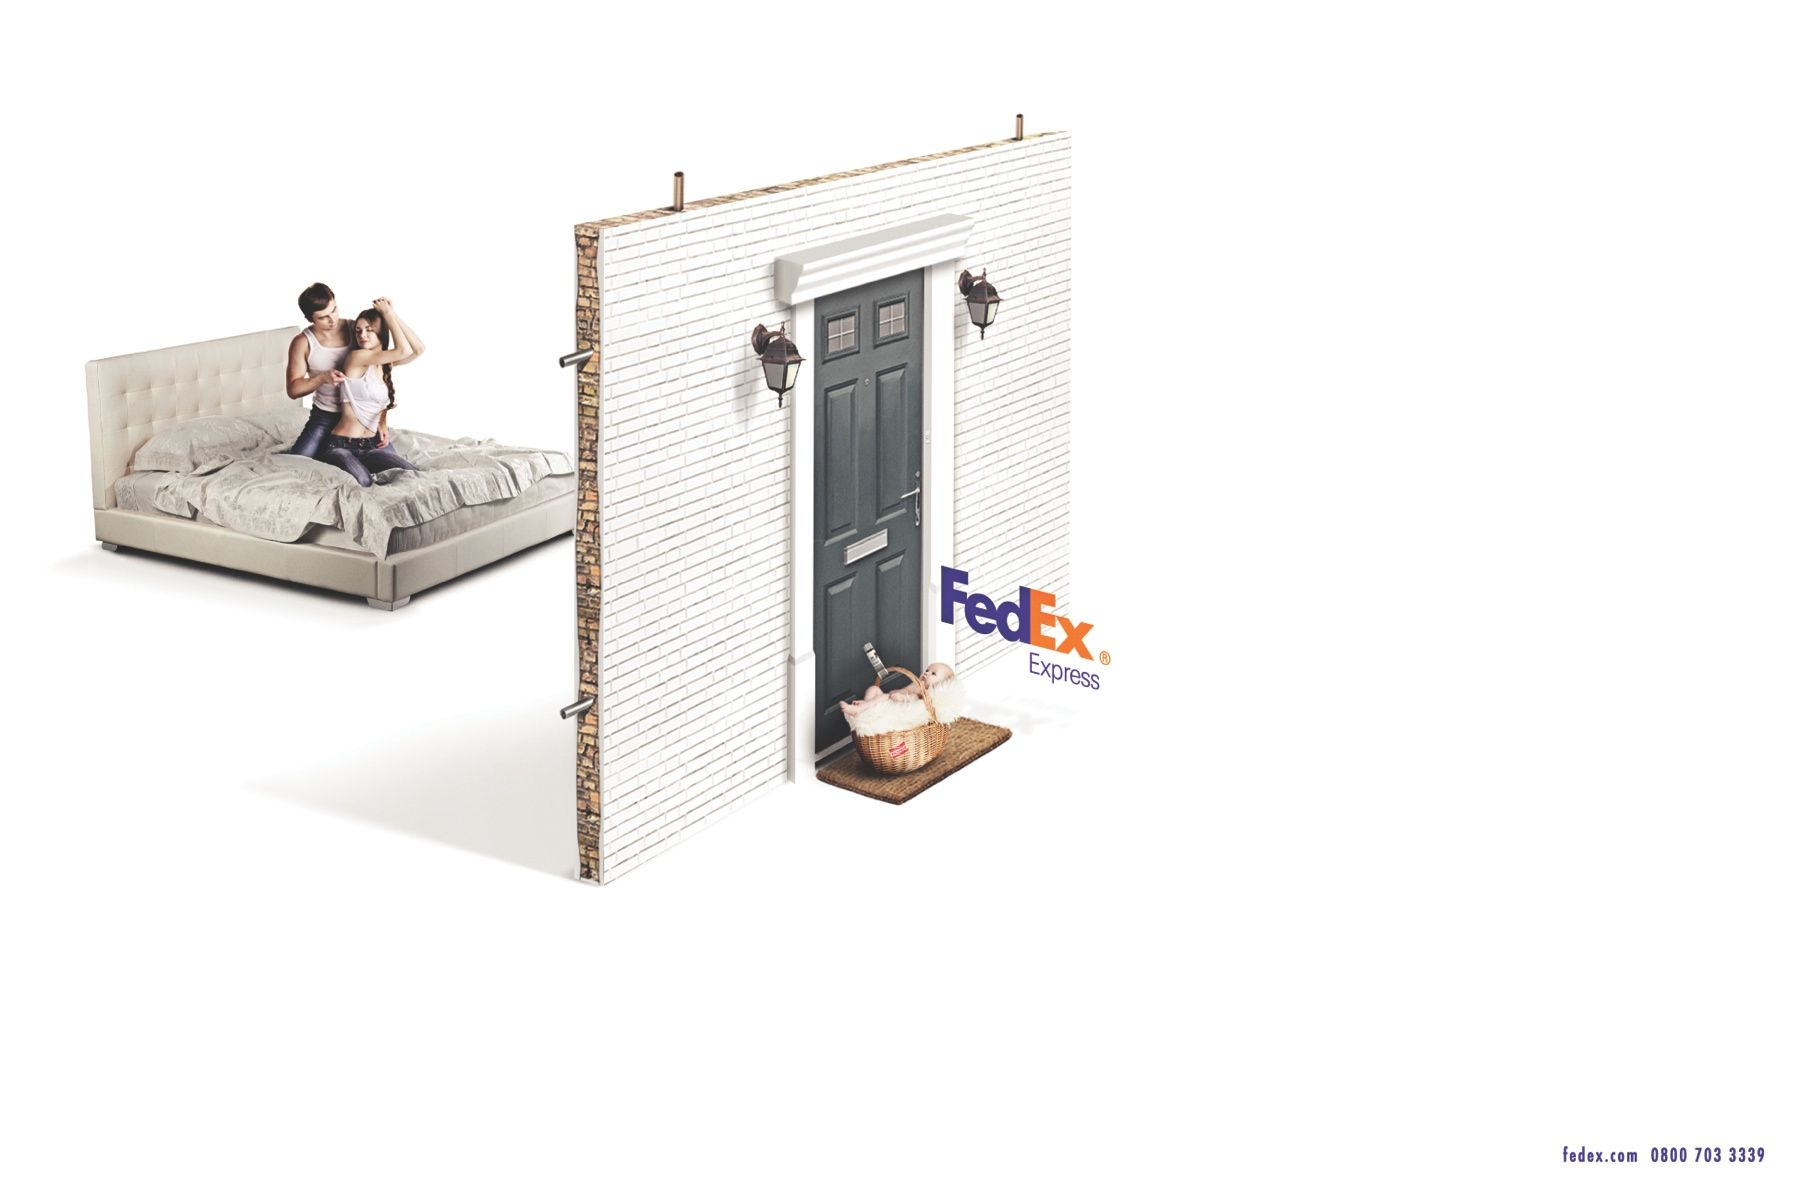 Print Advertisment Created By Cuca Escola De Criativos Brazil For FedEx Within The Category Transport